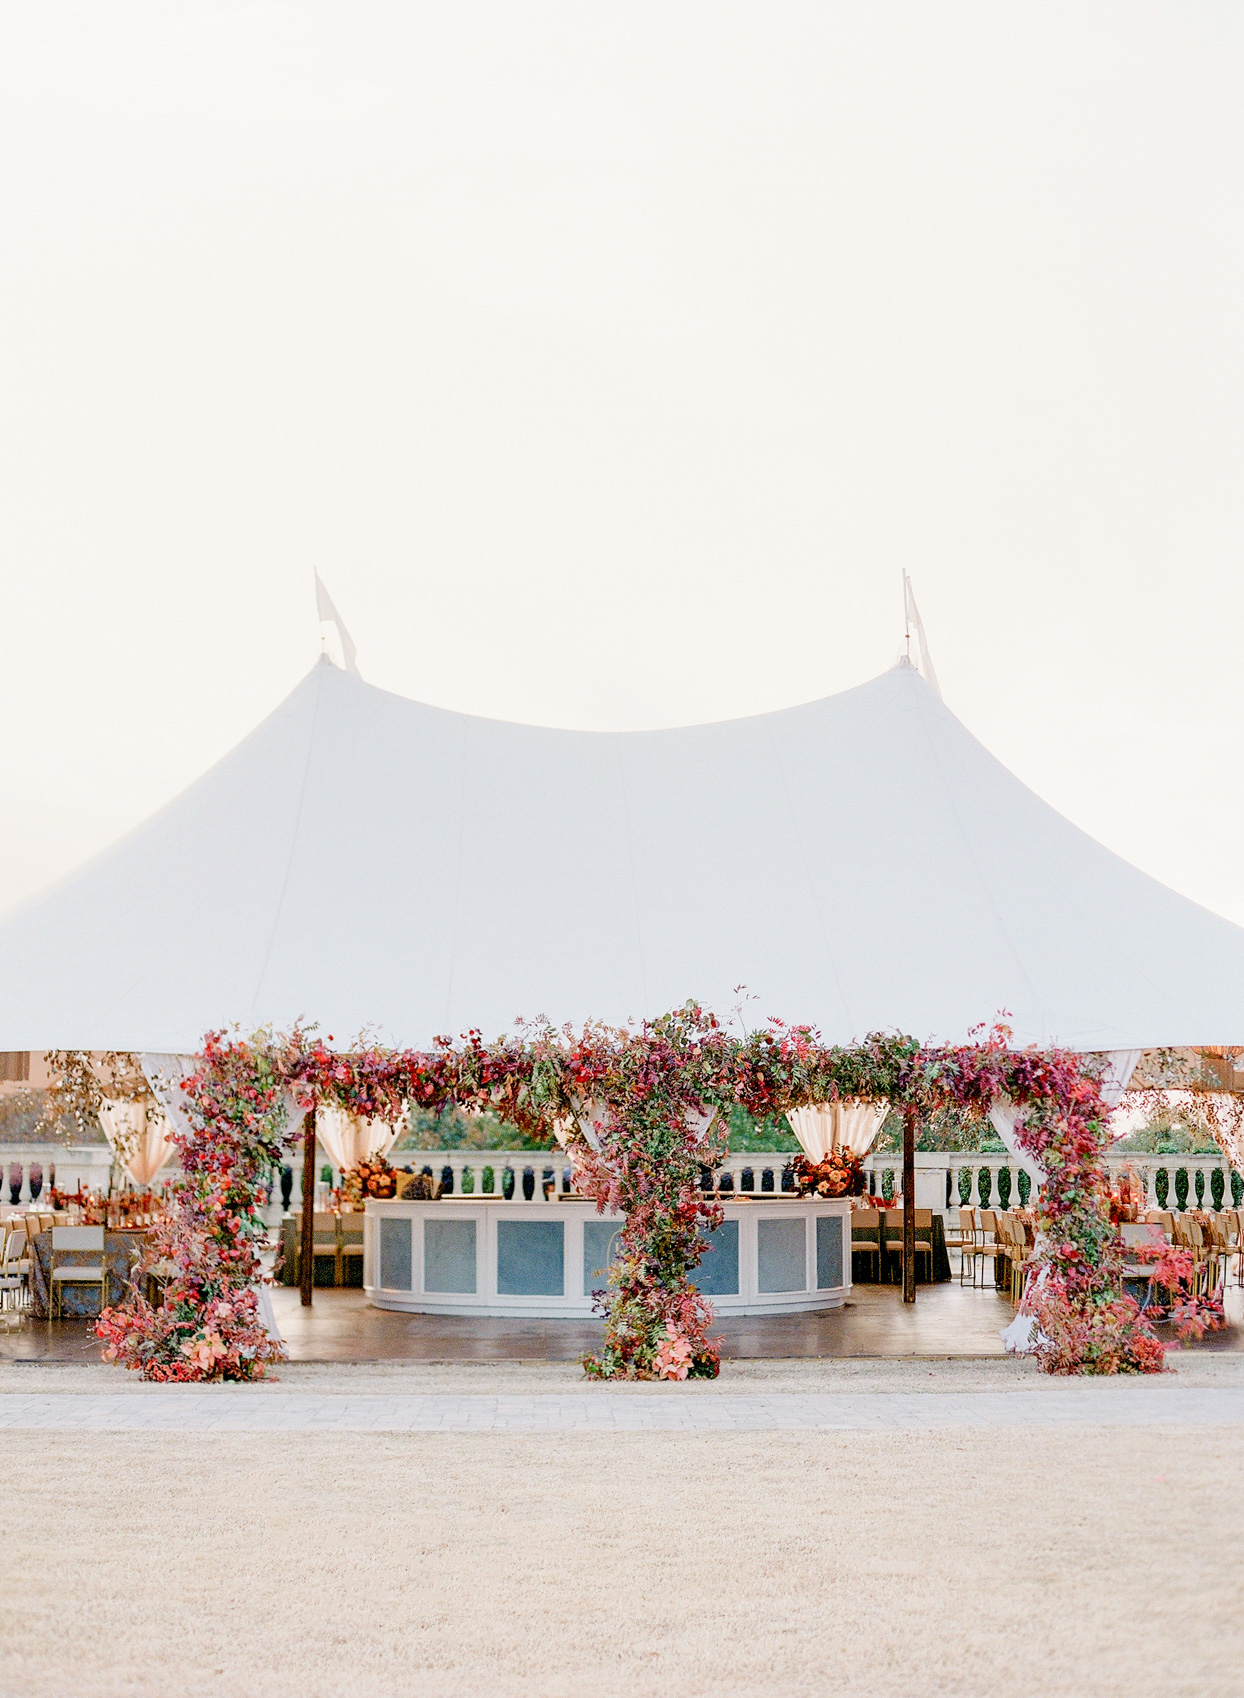 large white wedding tent with vibrant red florals